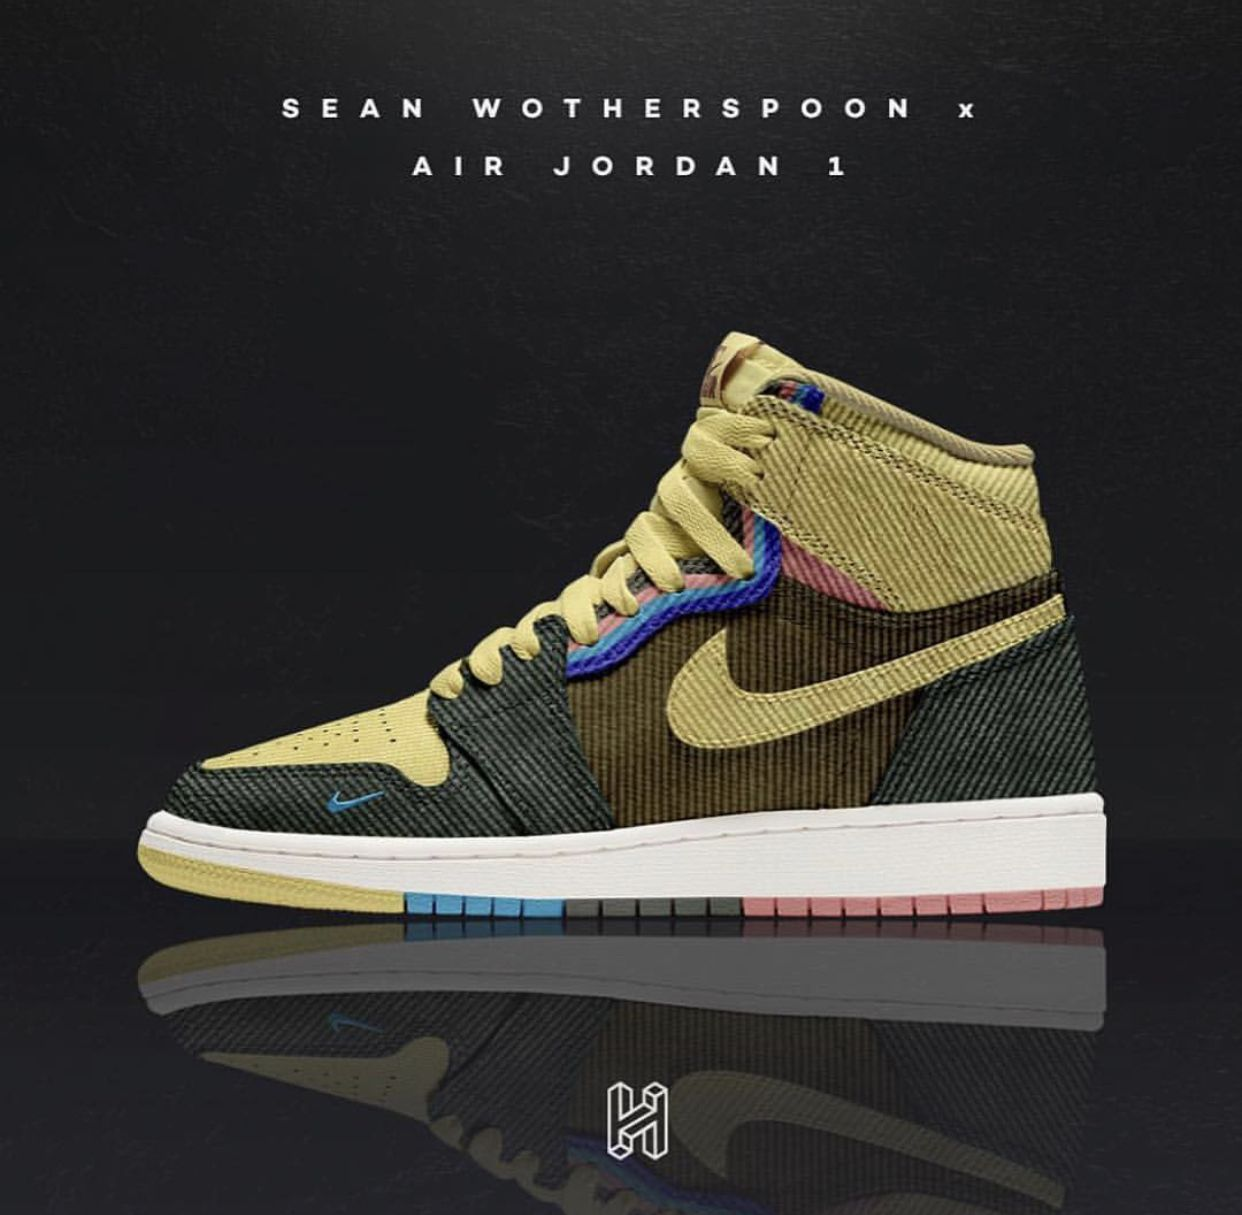 92cceed90355e2 Jordan 1 x Sean Wotherspoon